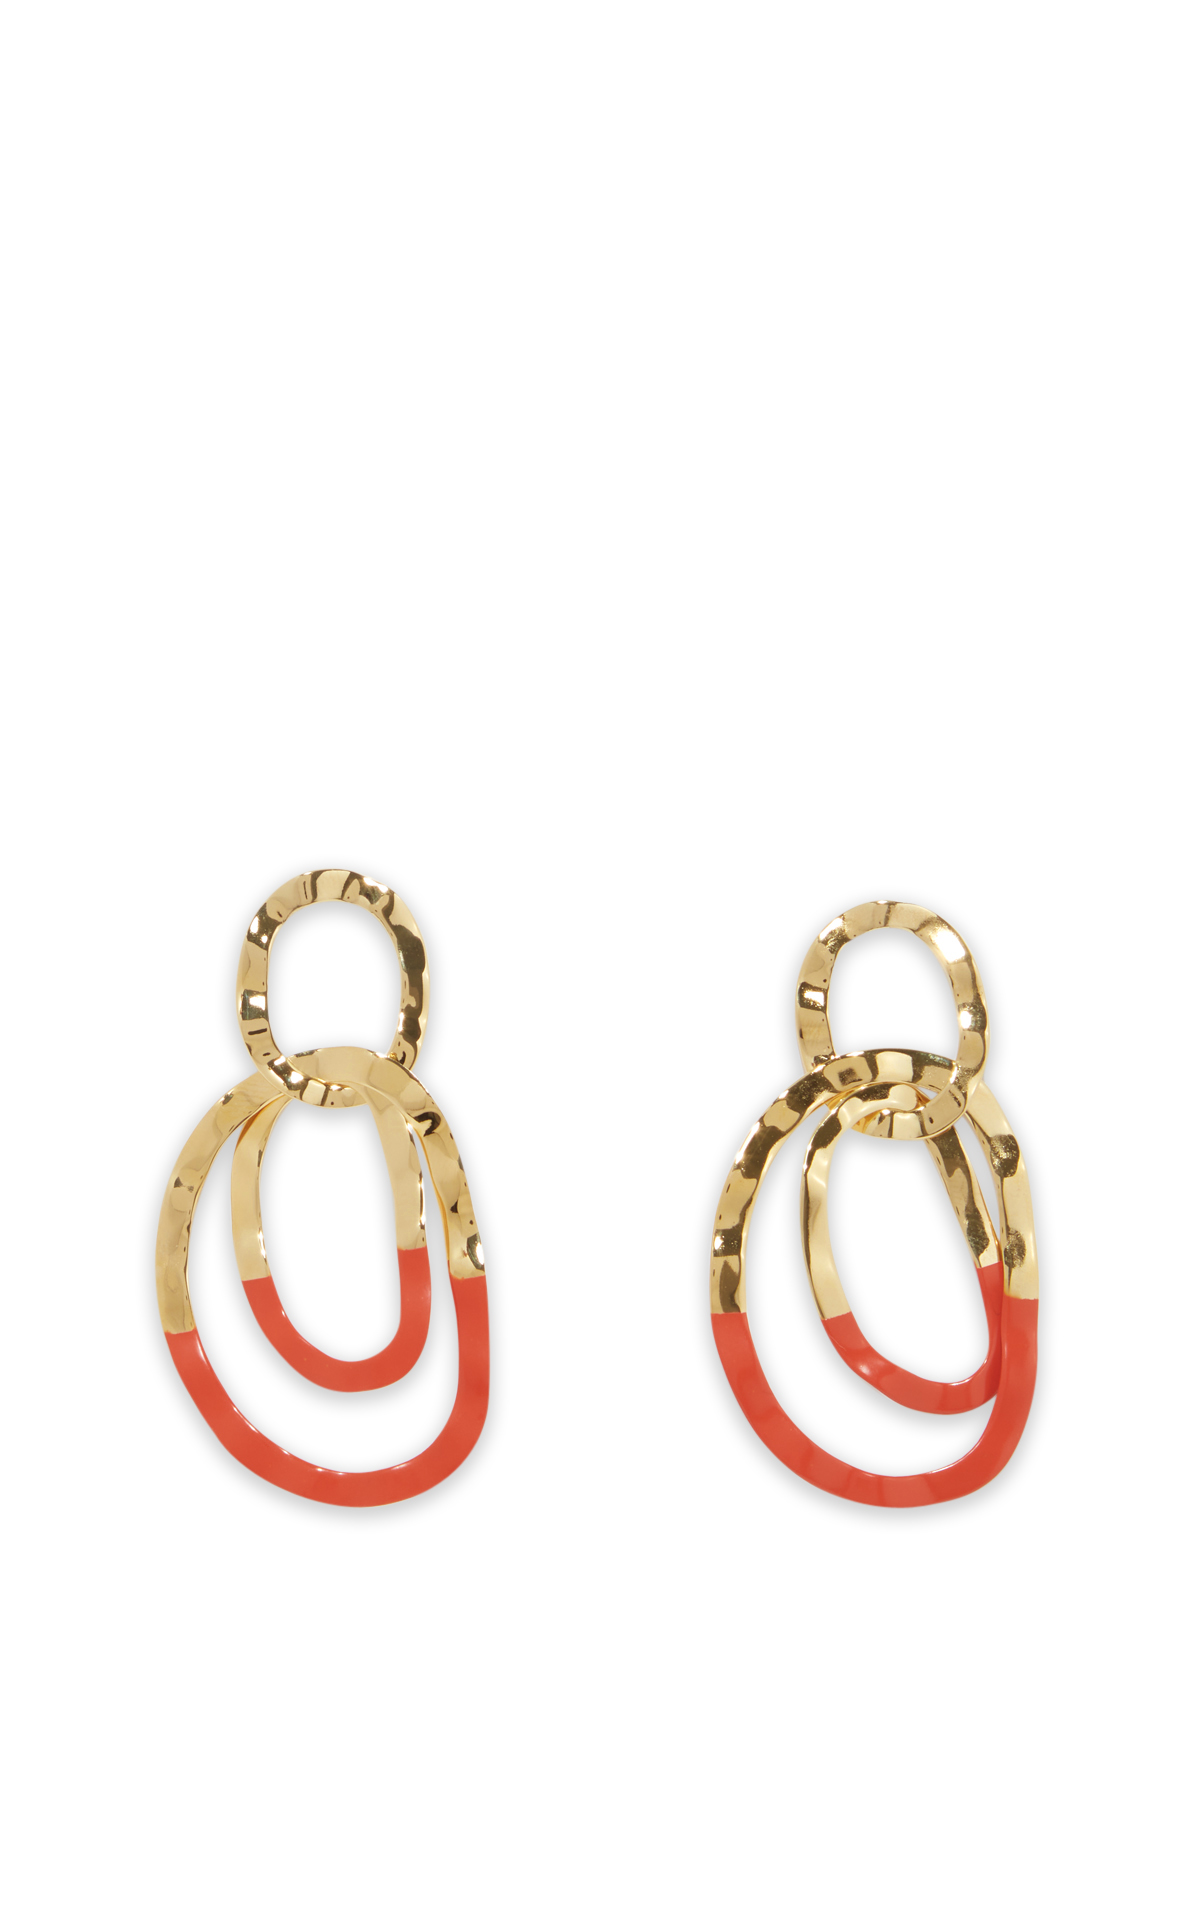 la vallée village Isabel Marant Red and gold earrings